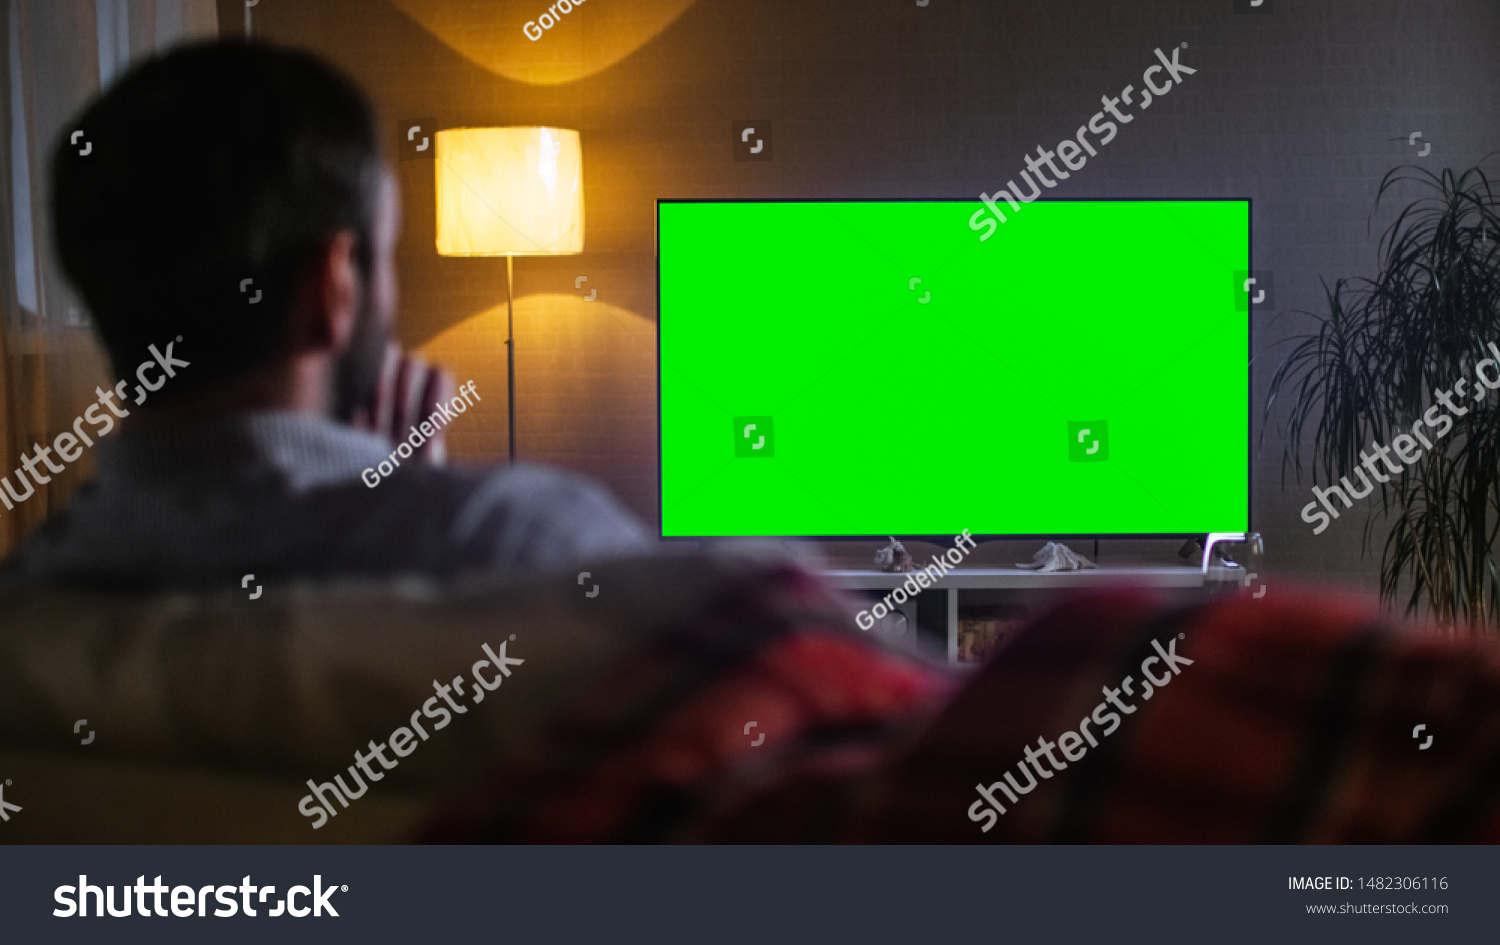 In the Evening Back View of a Middle Aged Man Sitting on a Couch Watching Big Flat Screen TV. #1482306116